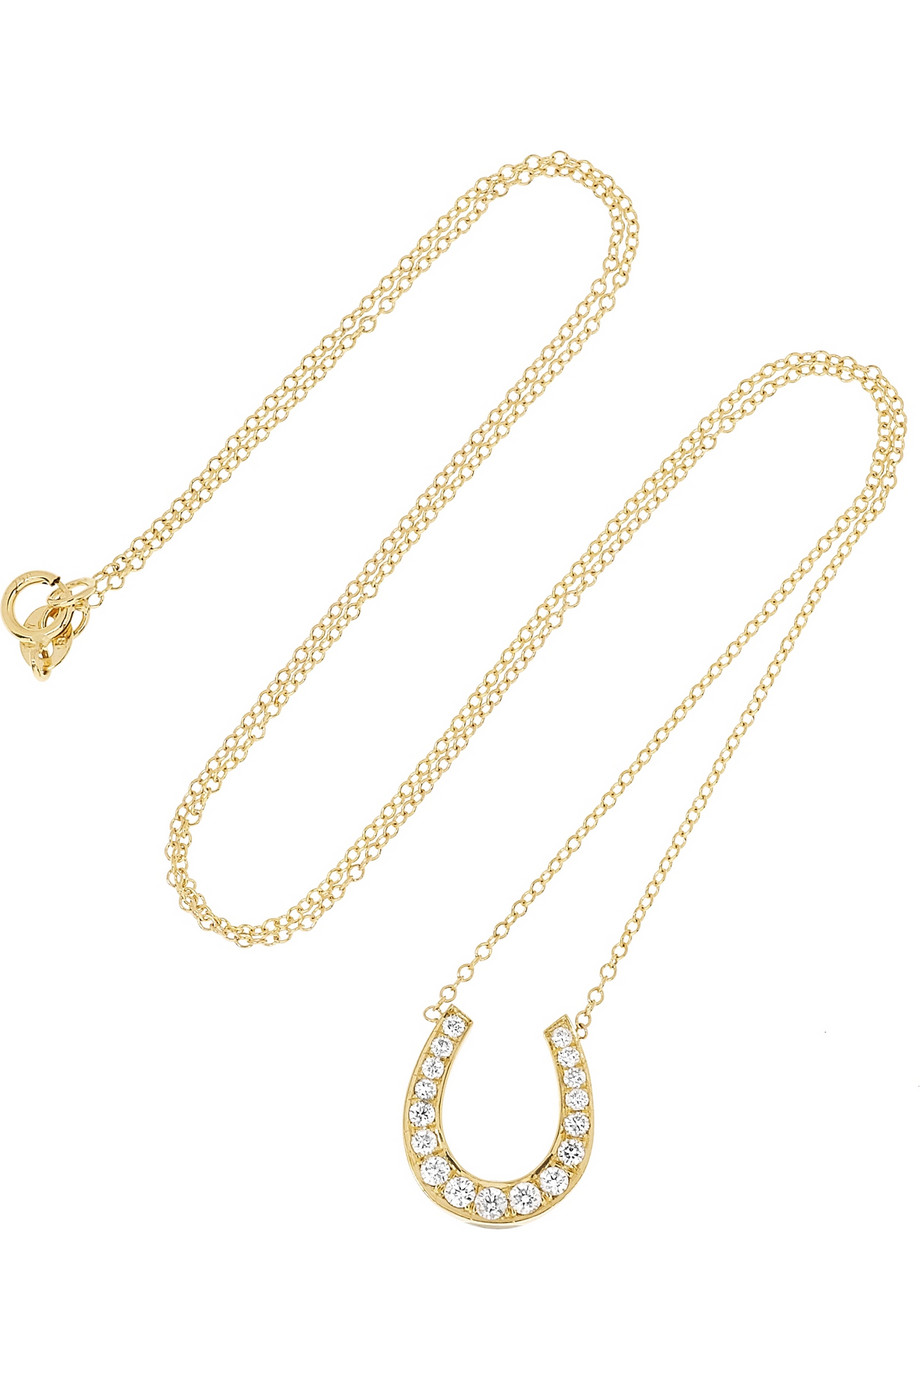 Anita Ko's gold diamond horseshoe necklace ($3,675) is simply irresistible. I'd wear it on my neck 365 days of the year. — Chi Diem Chau, associate editor